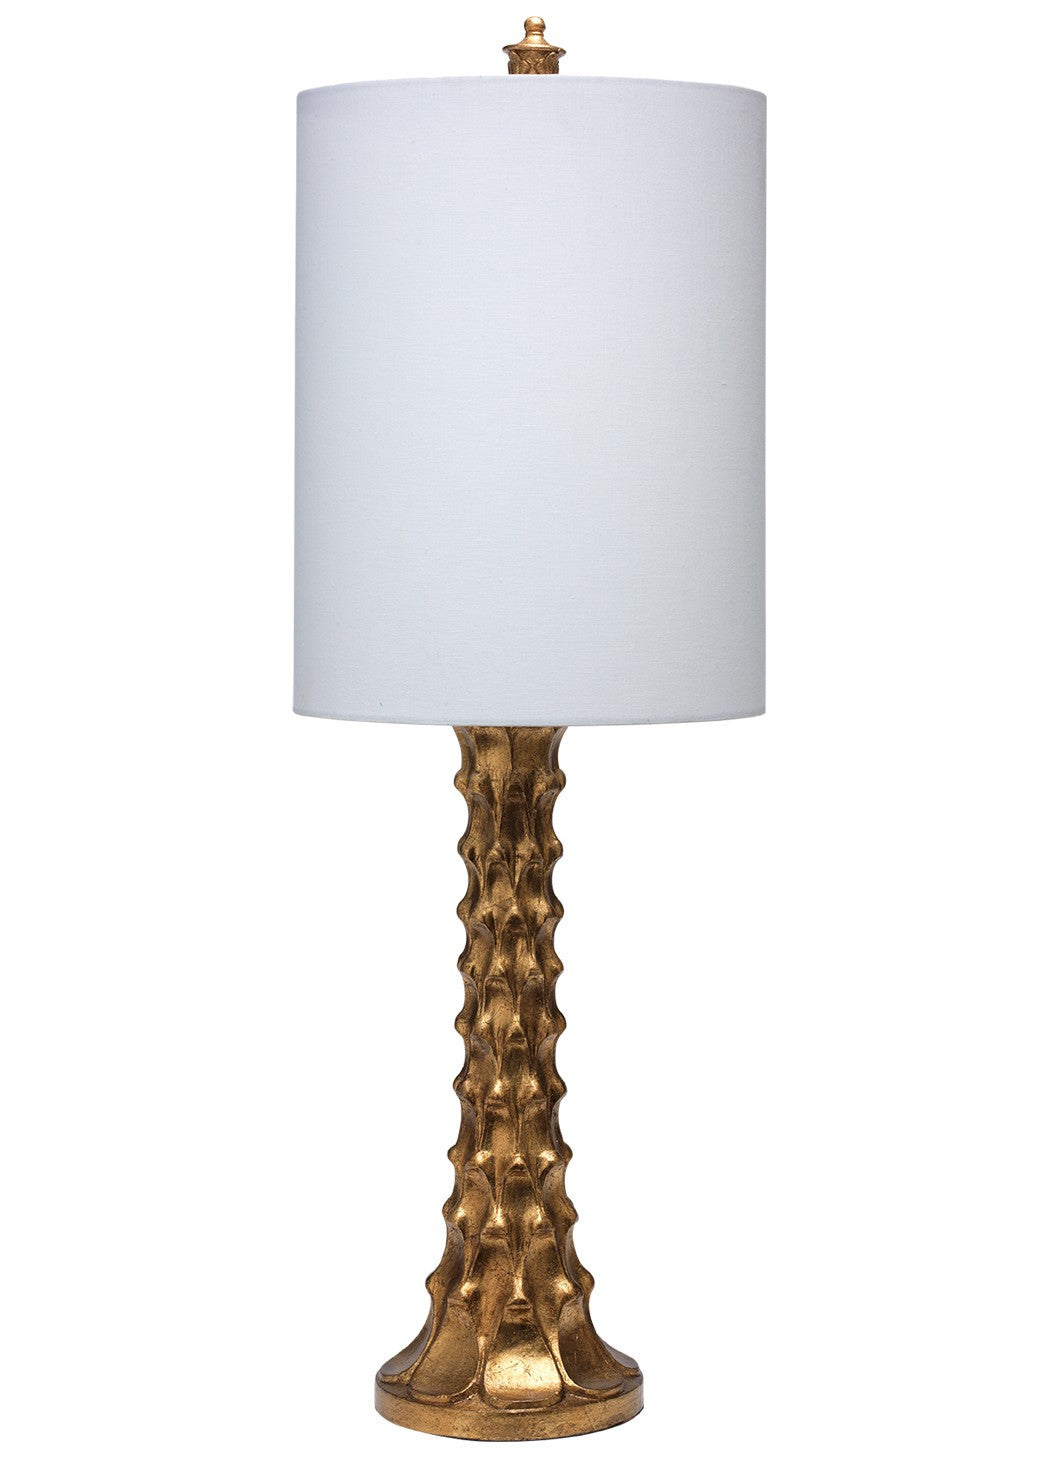 Tara table lamp jamie young luxe home philadelphia tara table lamp jamie young geotapseo Gallery